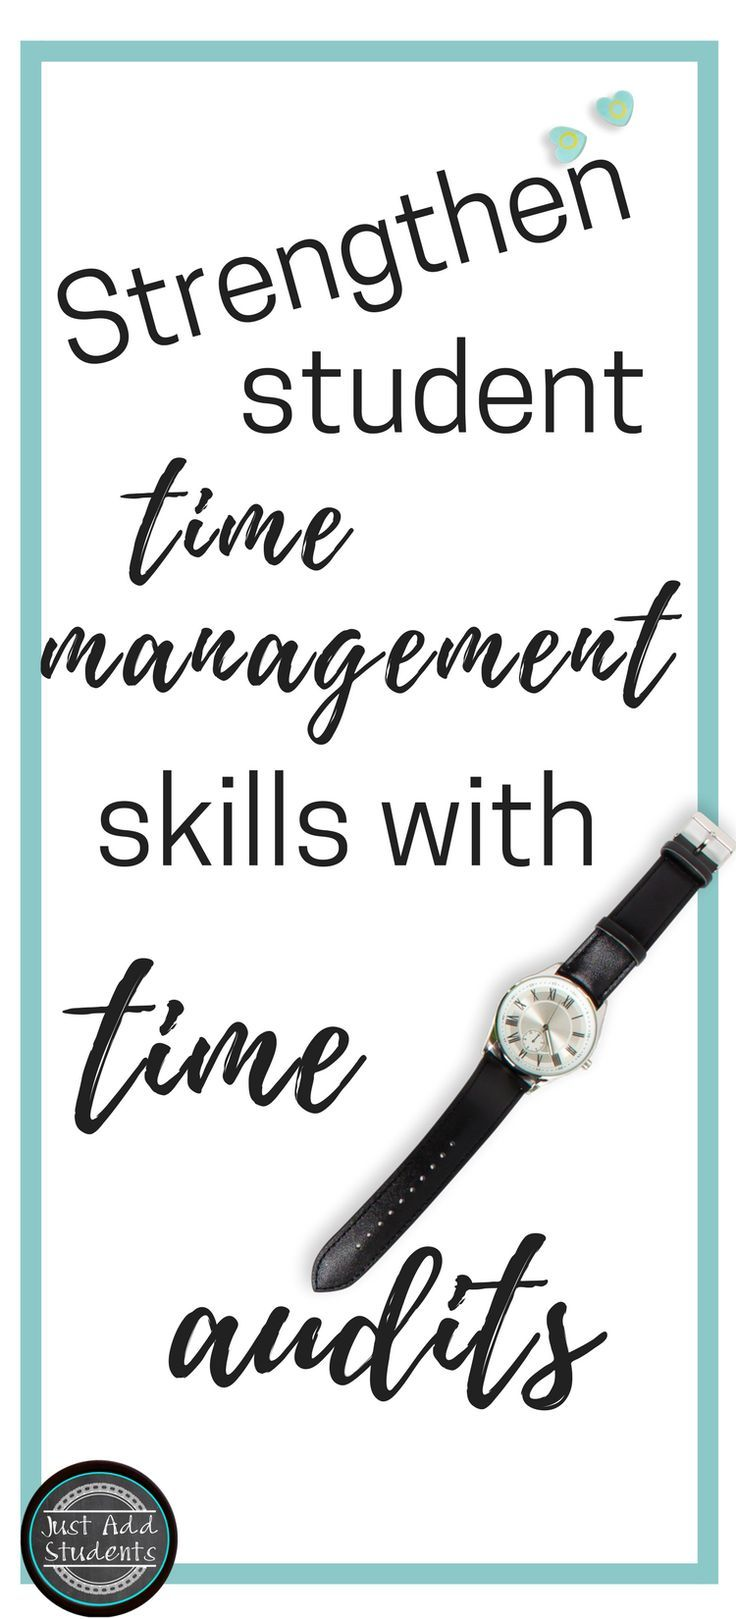 Strengthen Student Time Management Skills With Time Audits Just Add Students Study Skills Time Management Skills Management Skills